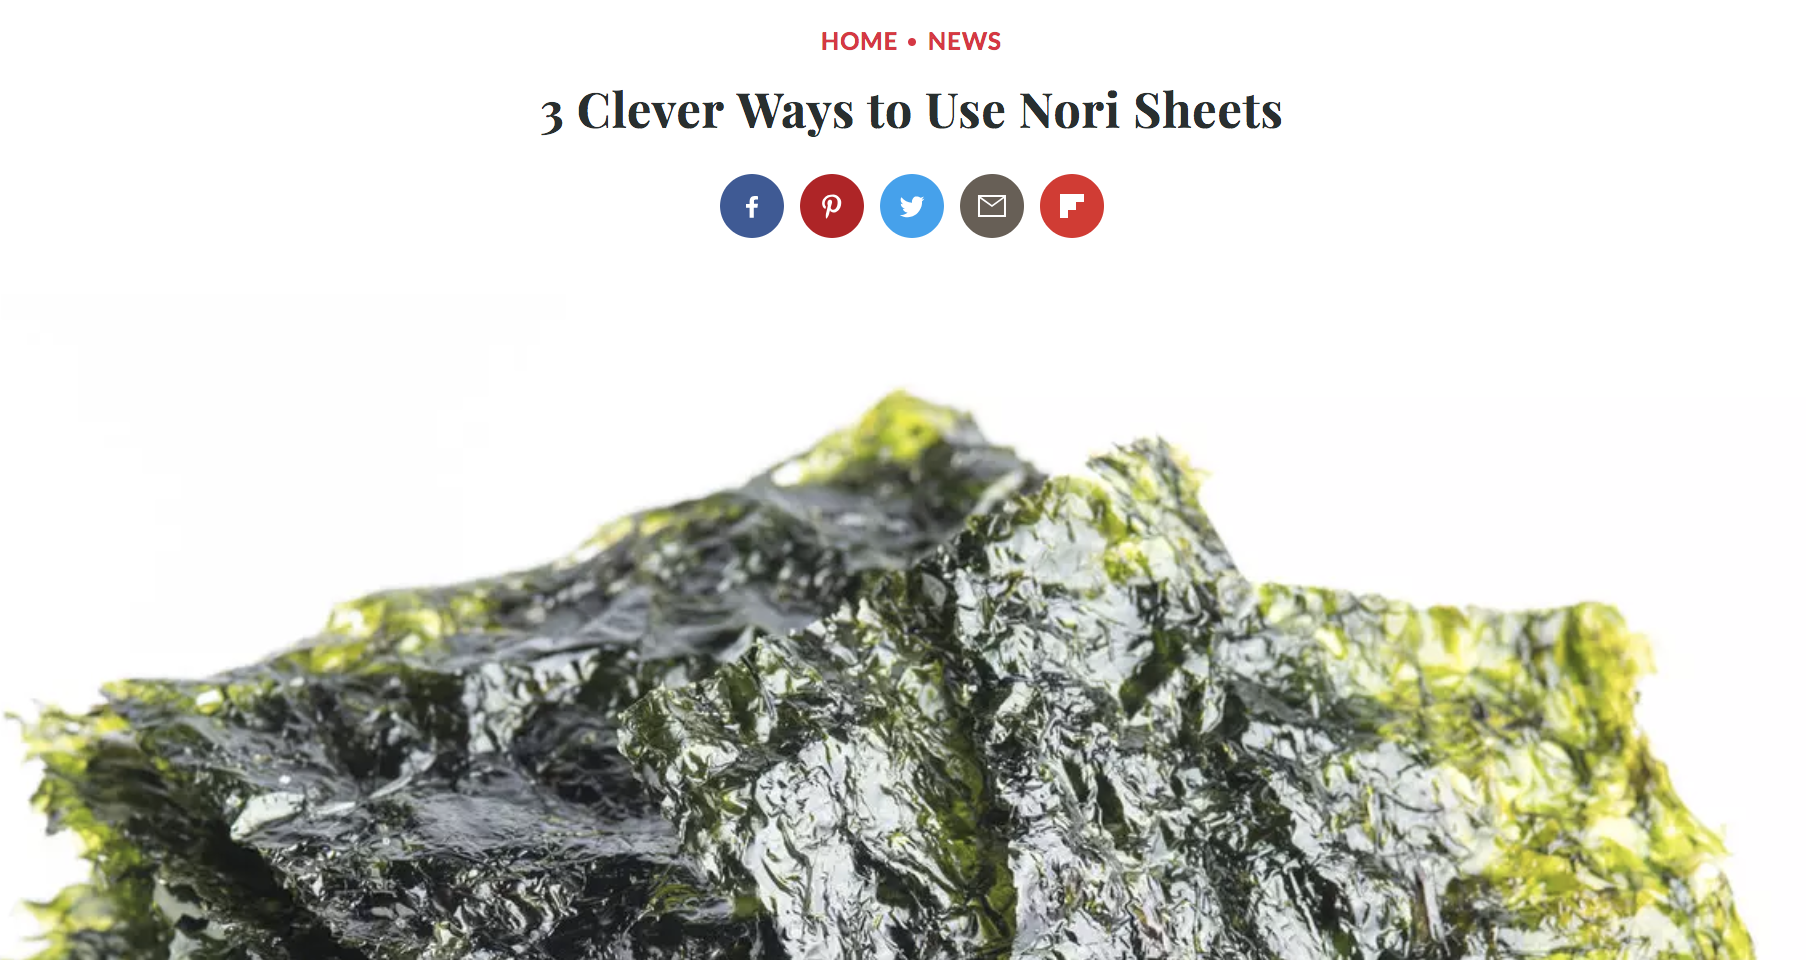 FOOD & WINE MAGAZINE  3 Clever Uses for Nori, August 2018